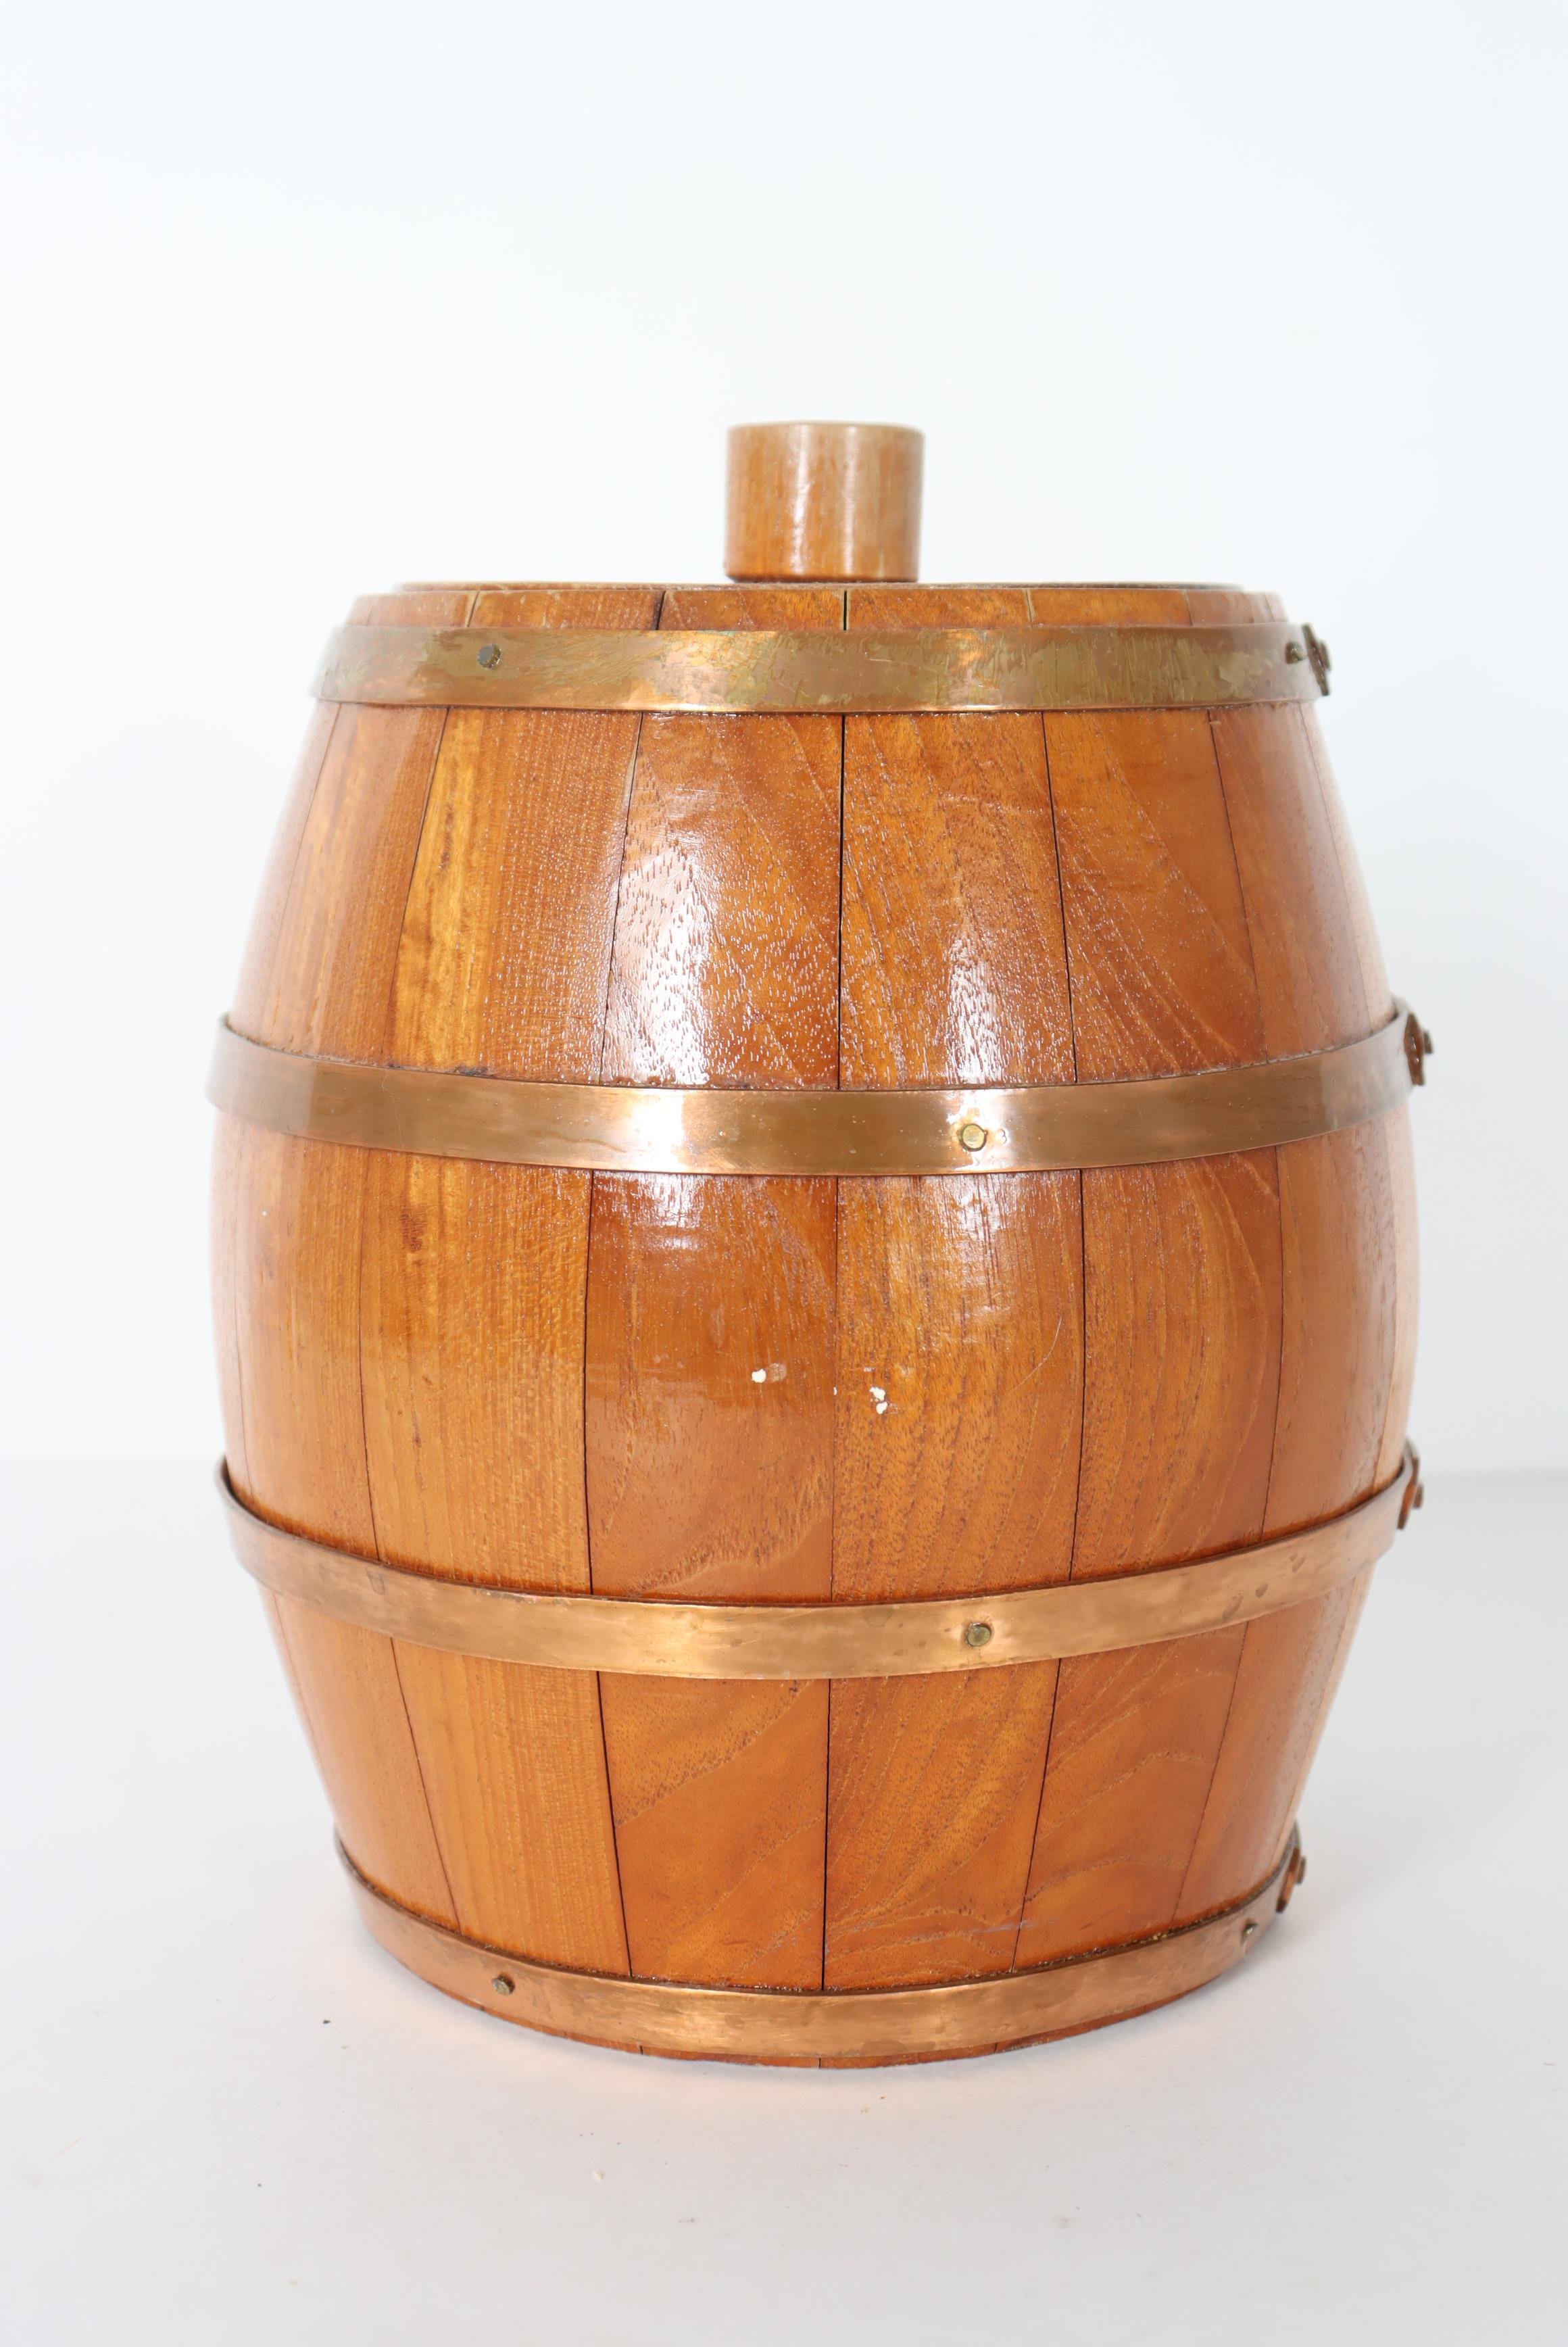 Small Lidded Wooden Barrel w Copper Bands - Image 4 of 4